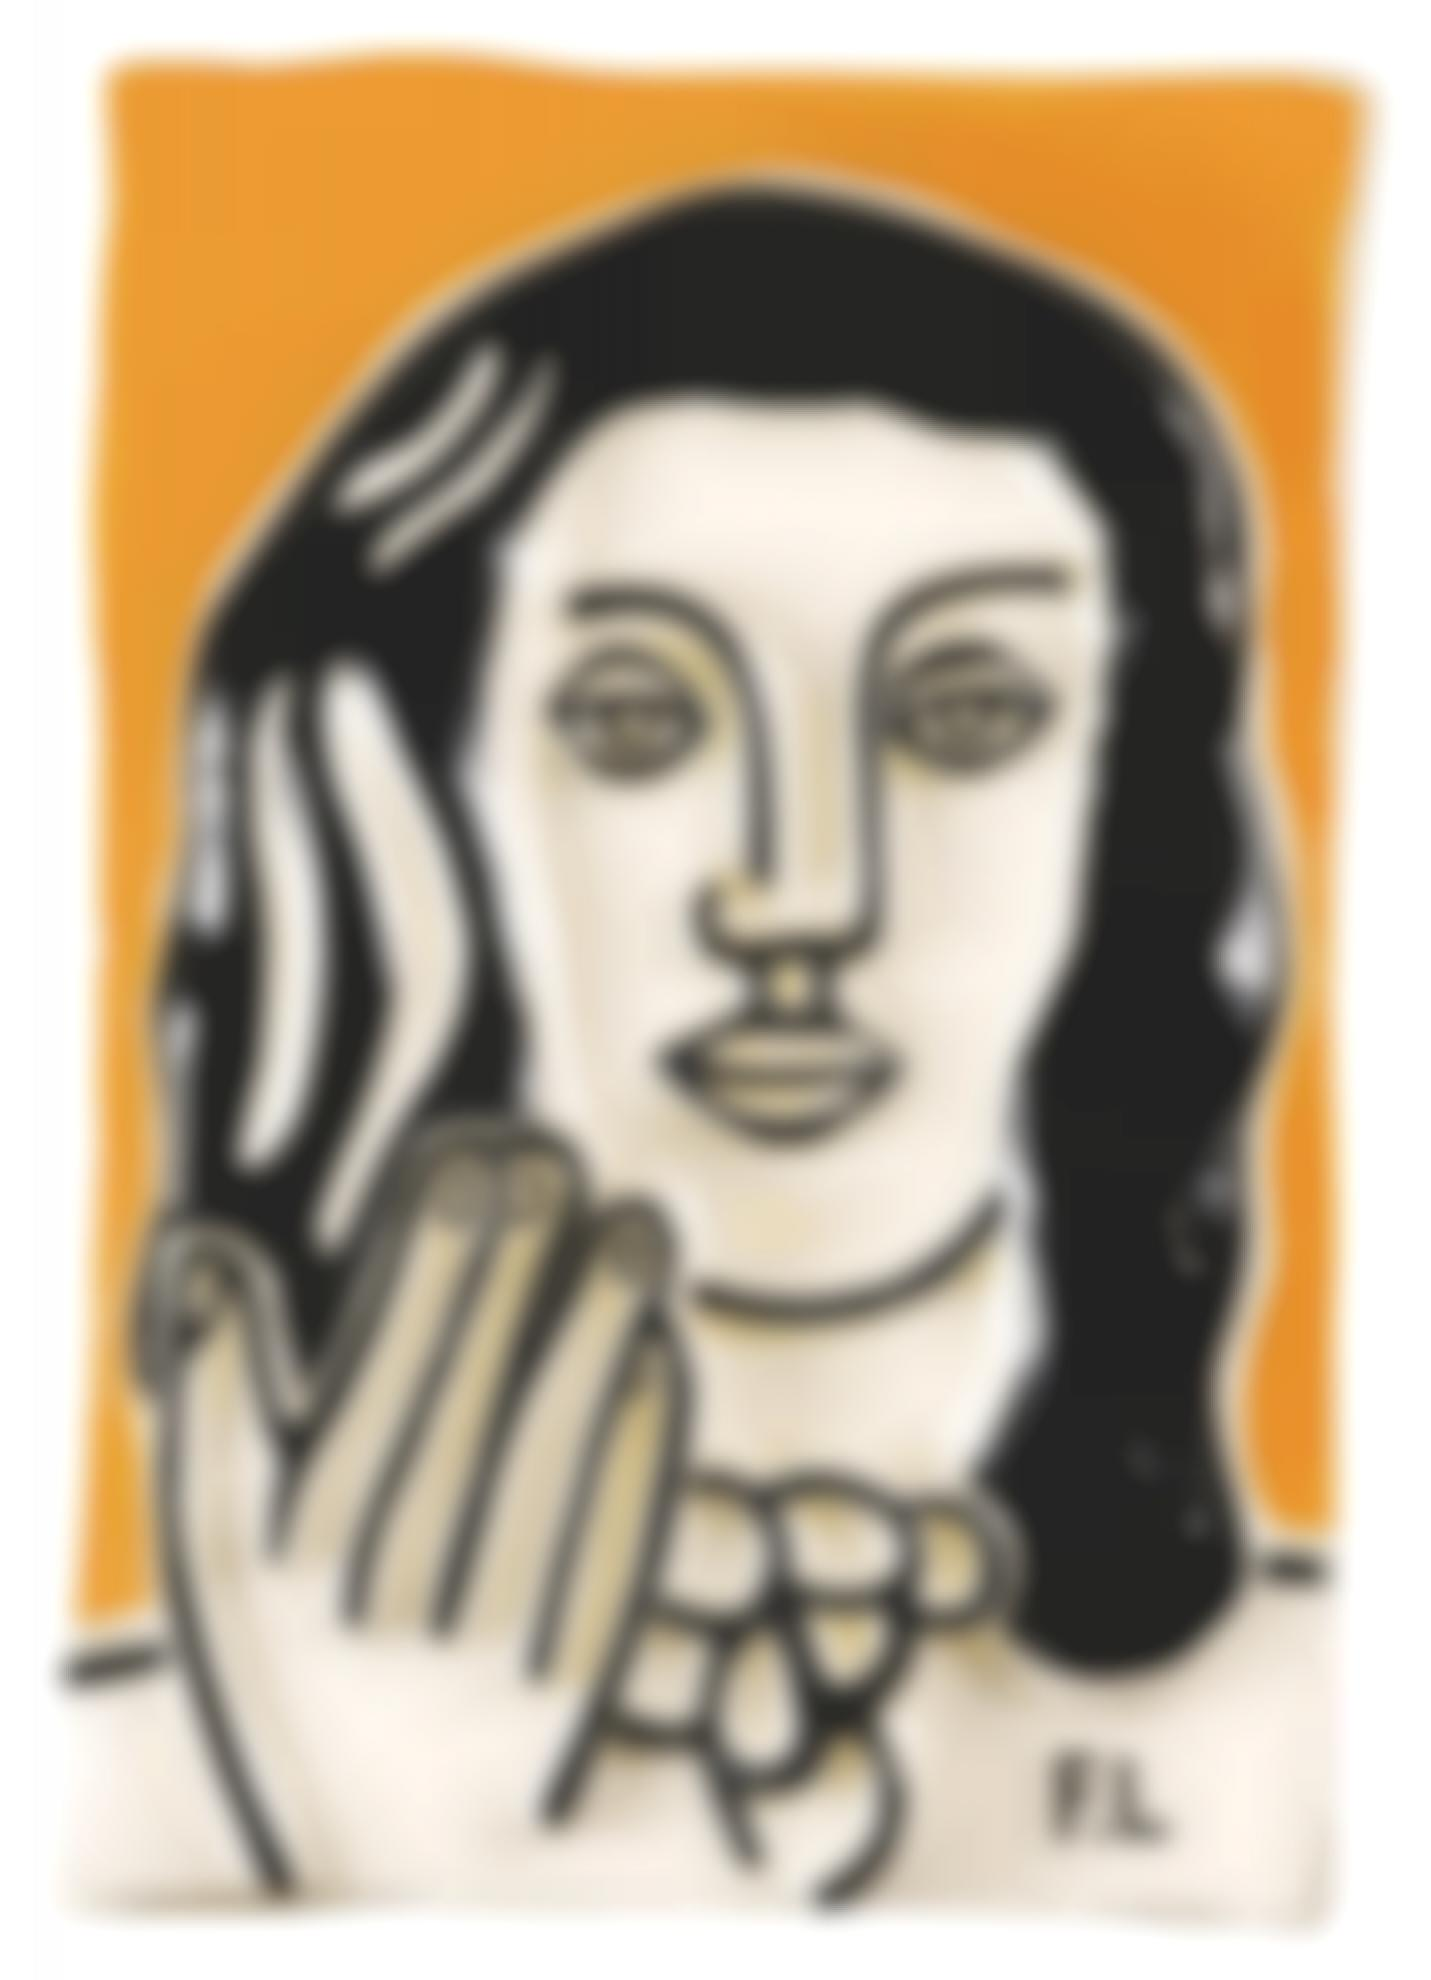 Fernand Leger-After Fernand Leger - Visage A Une Main Fond Ocre-1990